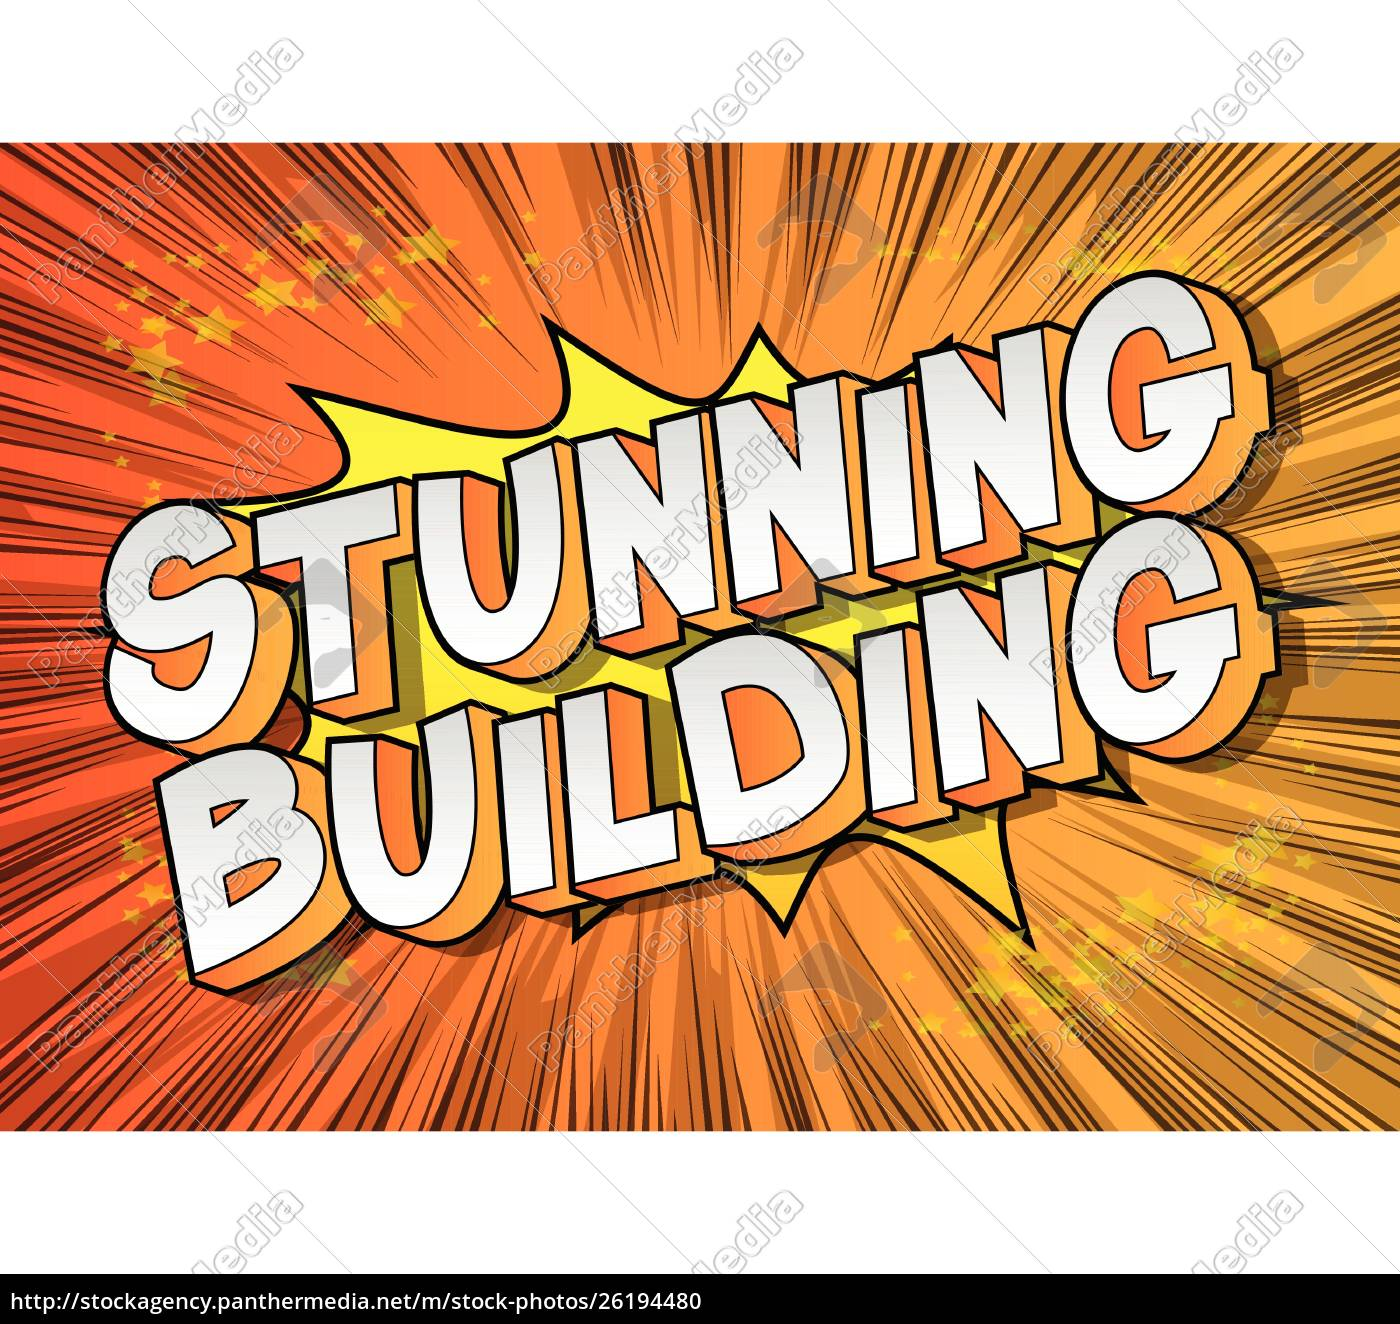 stunning, building, -, comic, book, style - 26194480